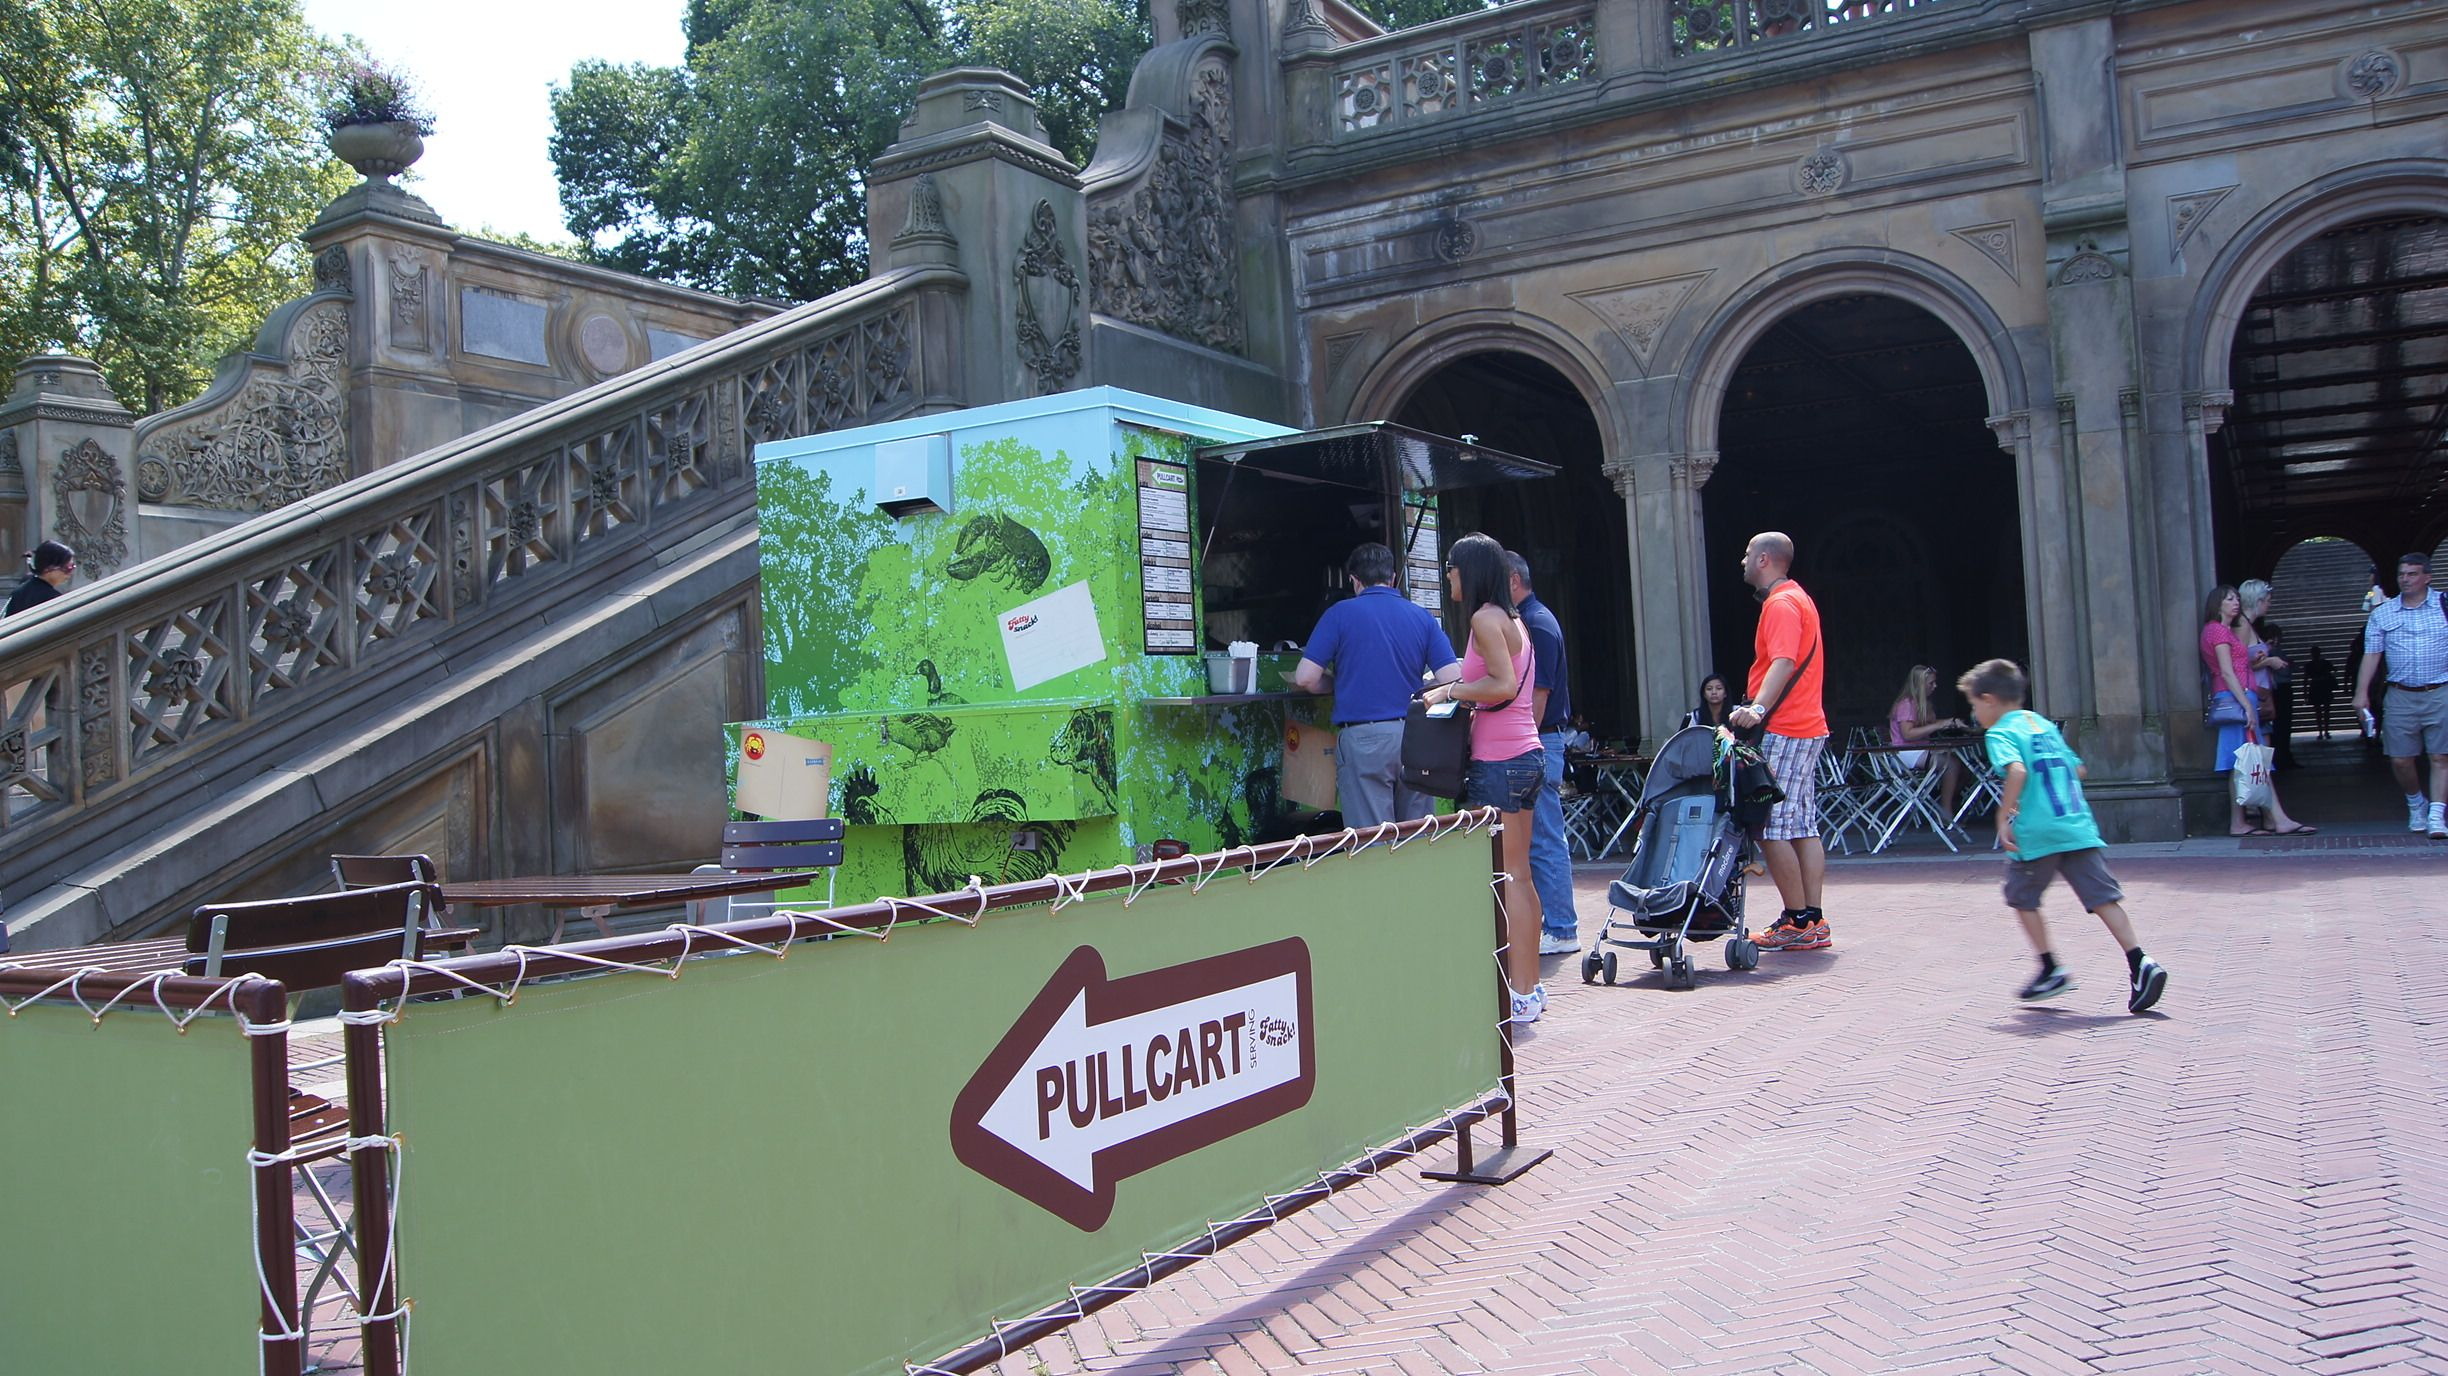 Pullcart in Central Park